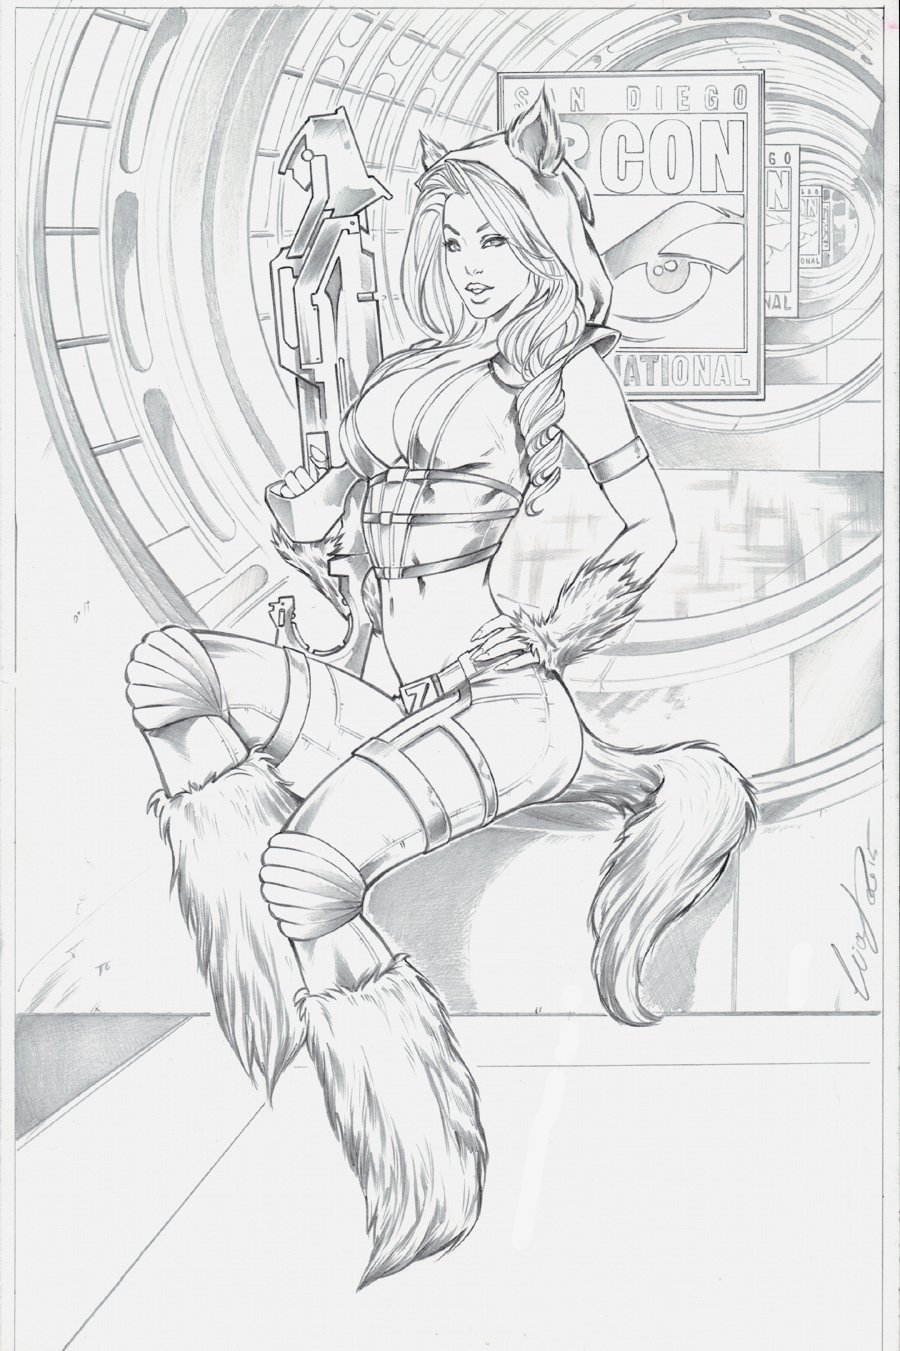 Red Riding Hood Sexy 1st Issue Cover! (2015)